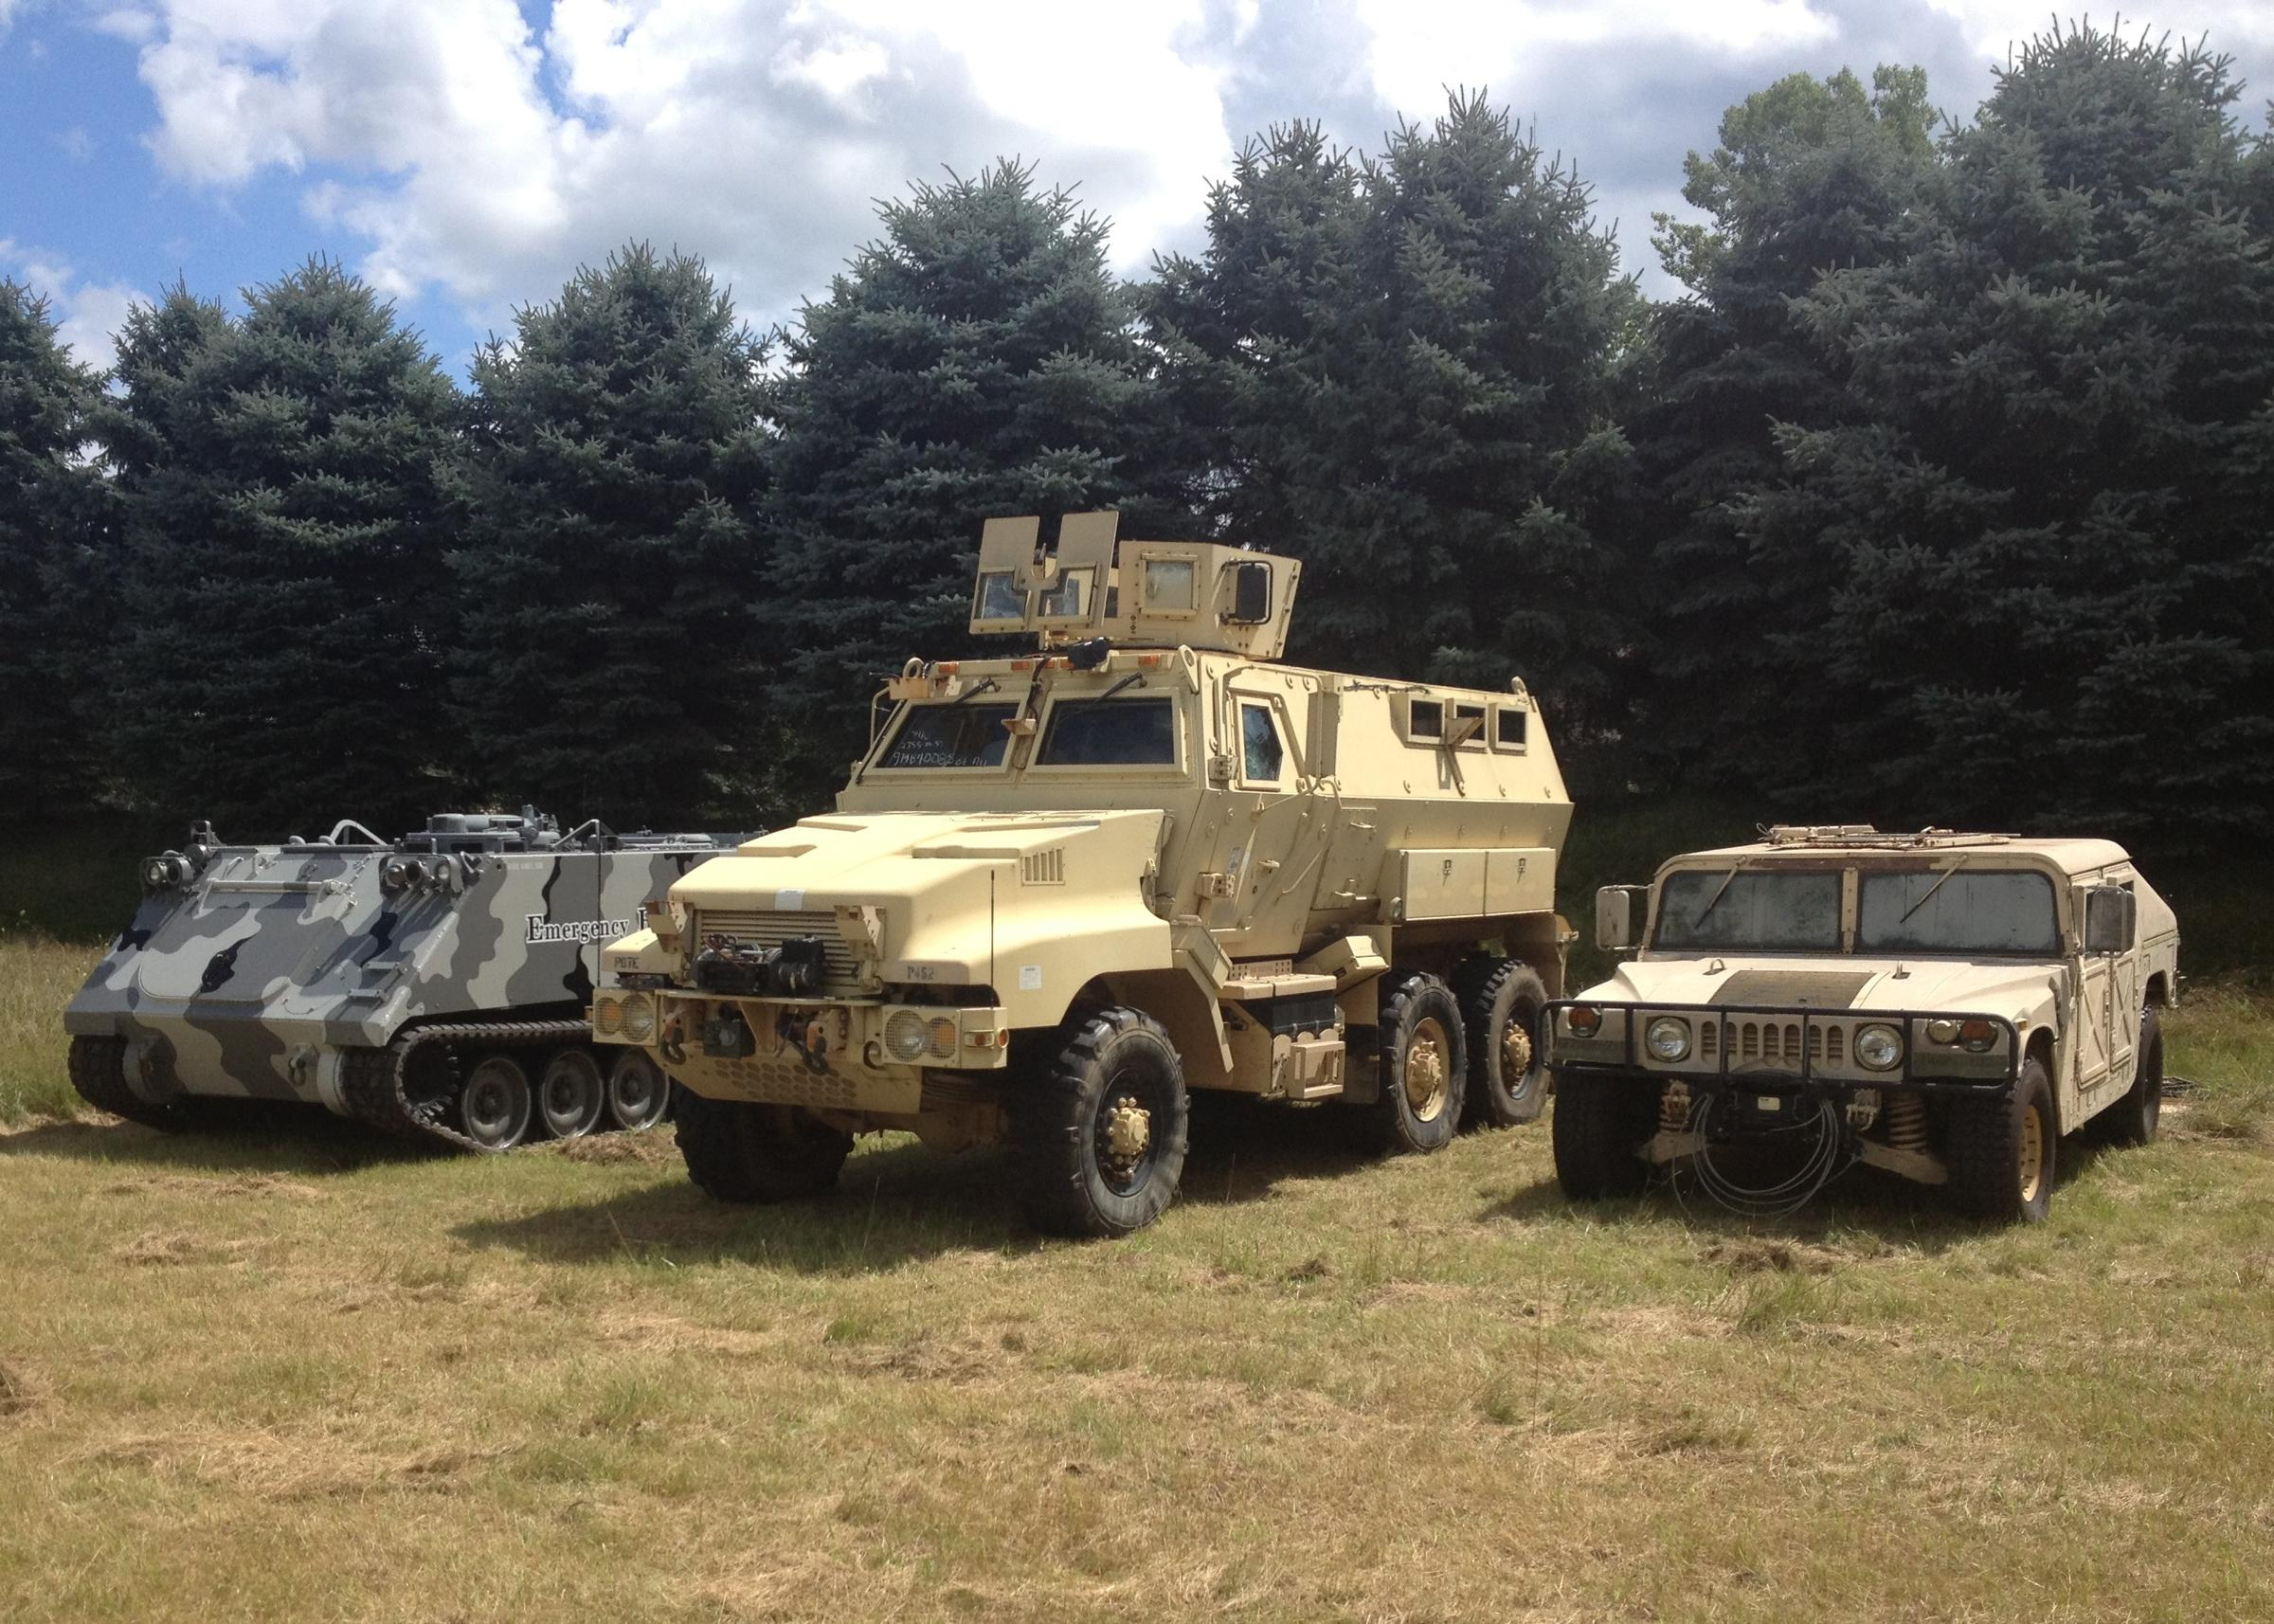 Used Military Vehicles >> State Law Enforcement Say Lifting Military Surplus Equipment